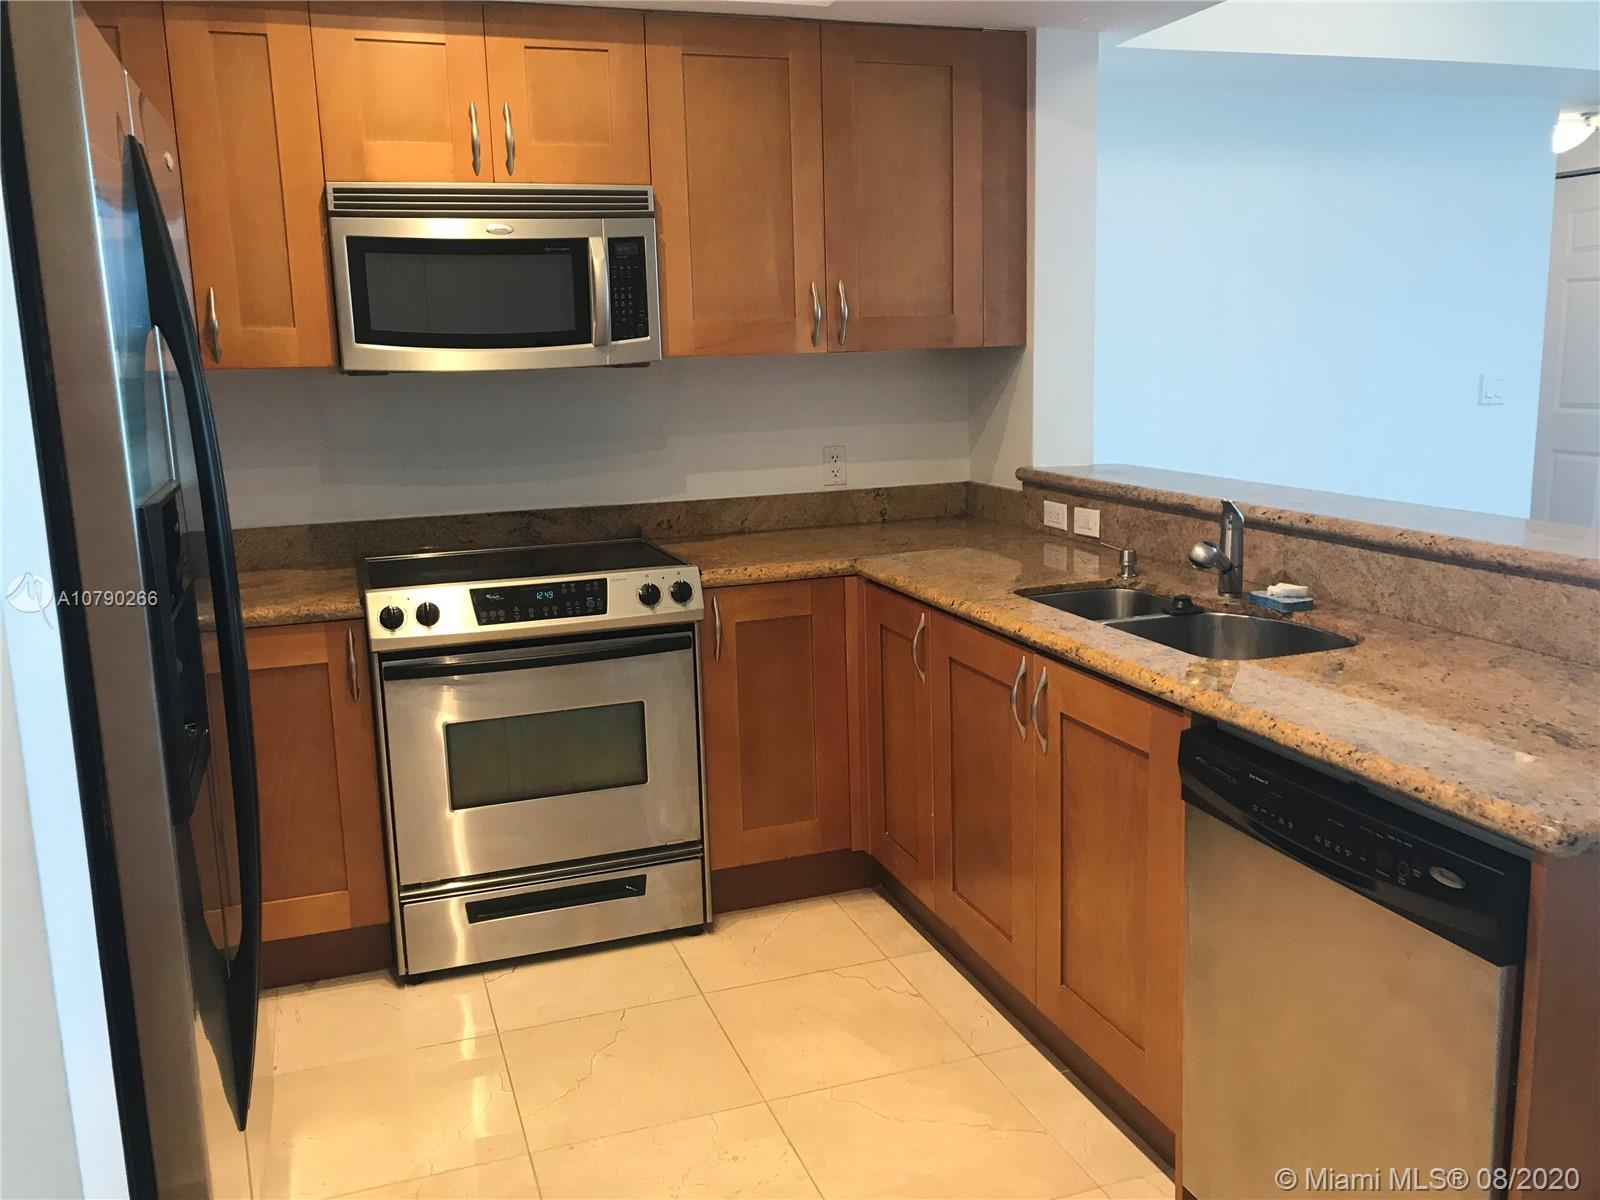 Photo of 1745 Hallandale Beach Blvd #201W, Hallandale, Florida, 33009 - KITCHEN - S/S APPLIANCES & GRANITE COUNTER TOPS